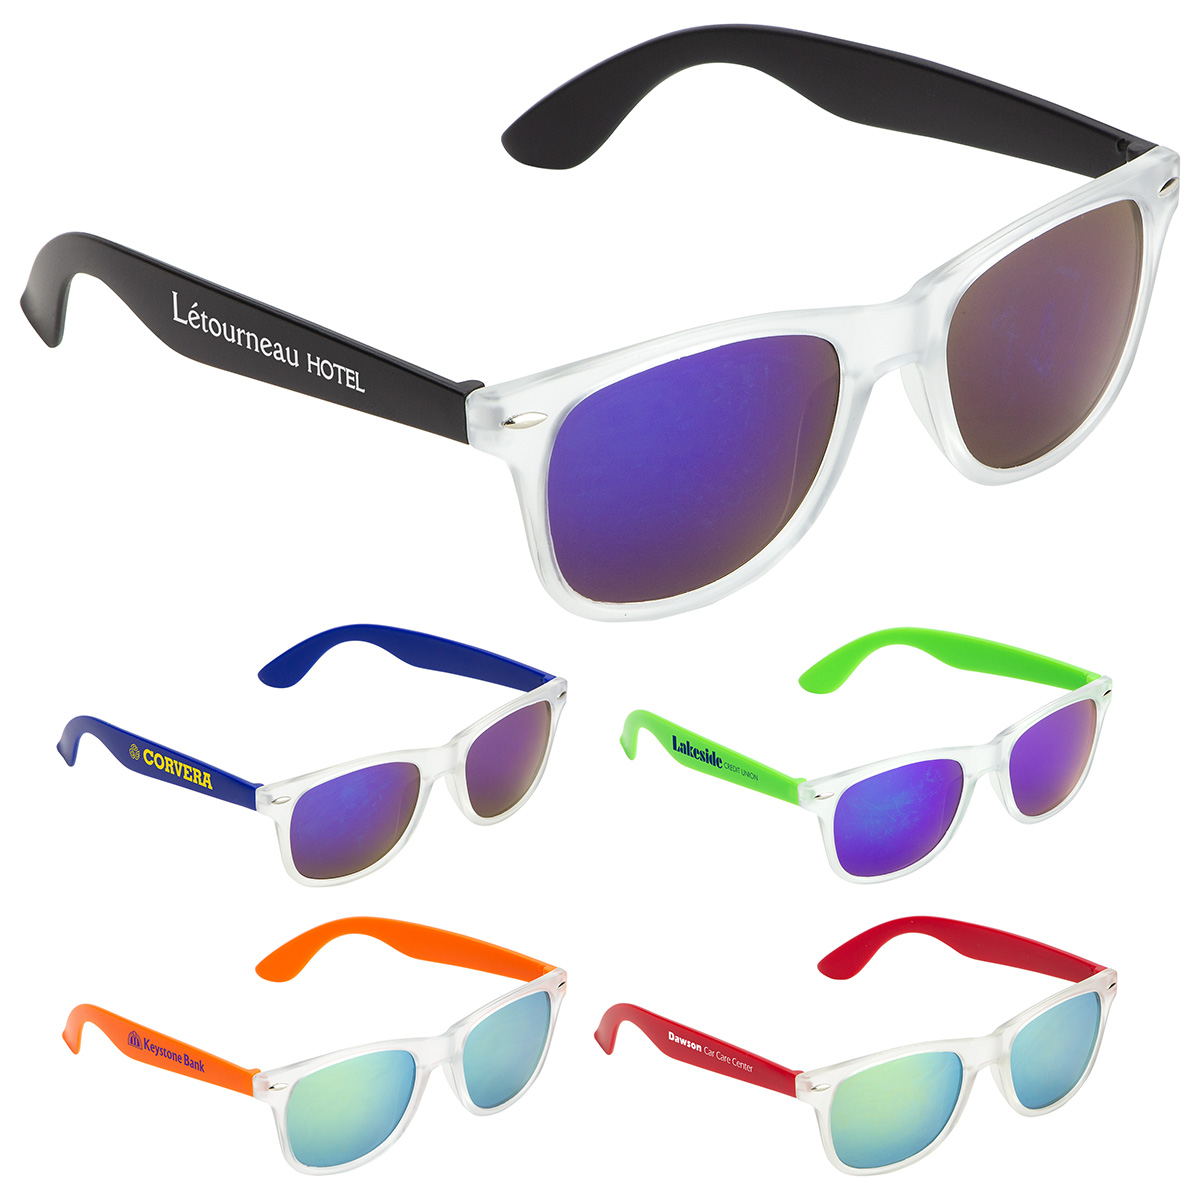 Key West Mirrored Sunglasses, WPC-KW19, 1 Colour Imprint